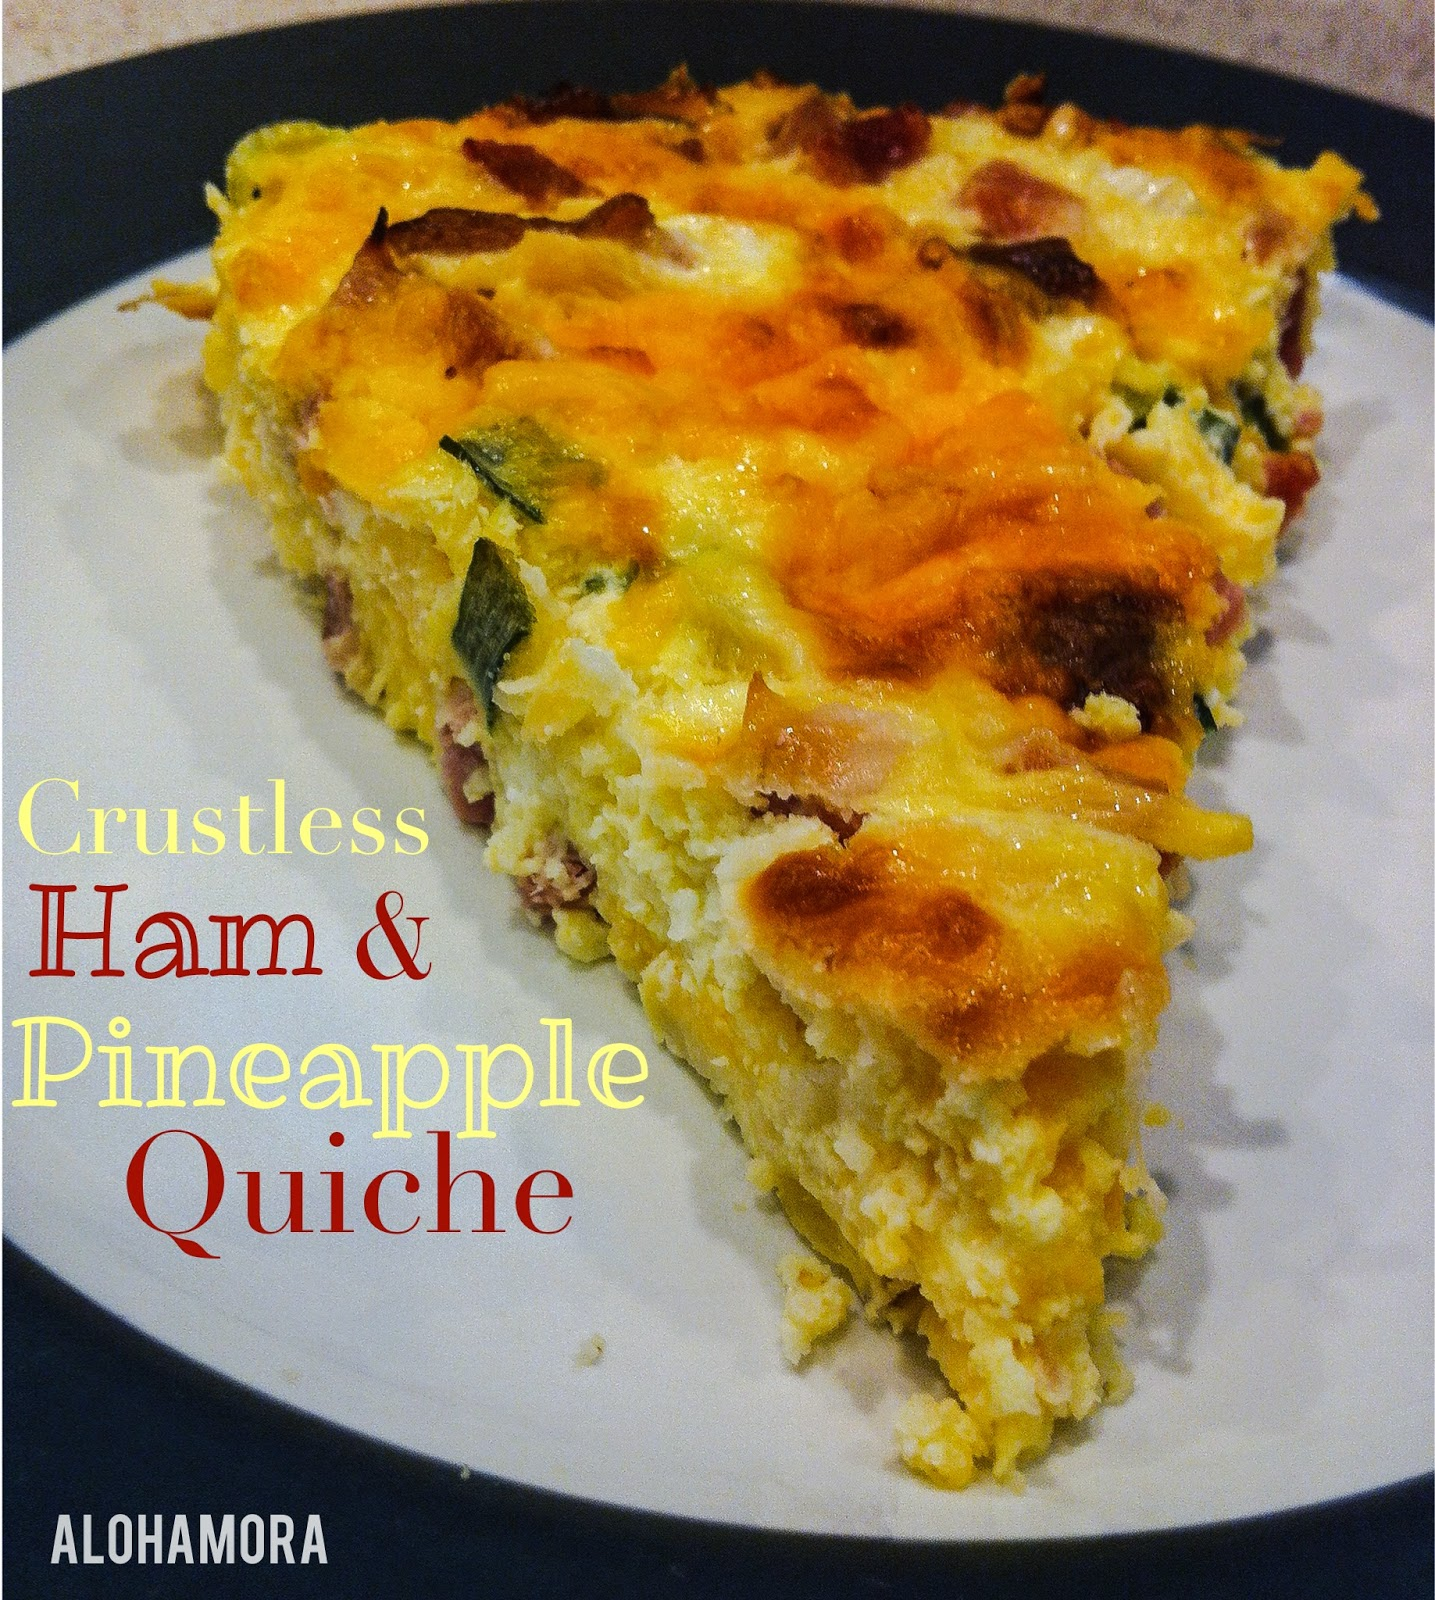 Gluten Free Ham and Pineapple Crustless Quiche.  Sweet and Salty and healthy goodness that is easy to make.  Alohamora Open a Book http://alohamoraopenabook.blogspot.com/